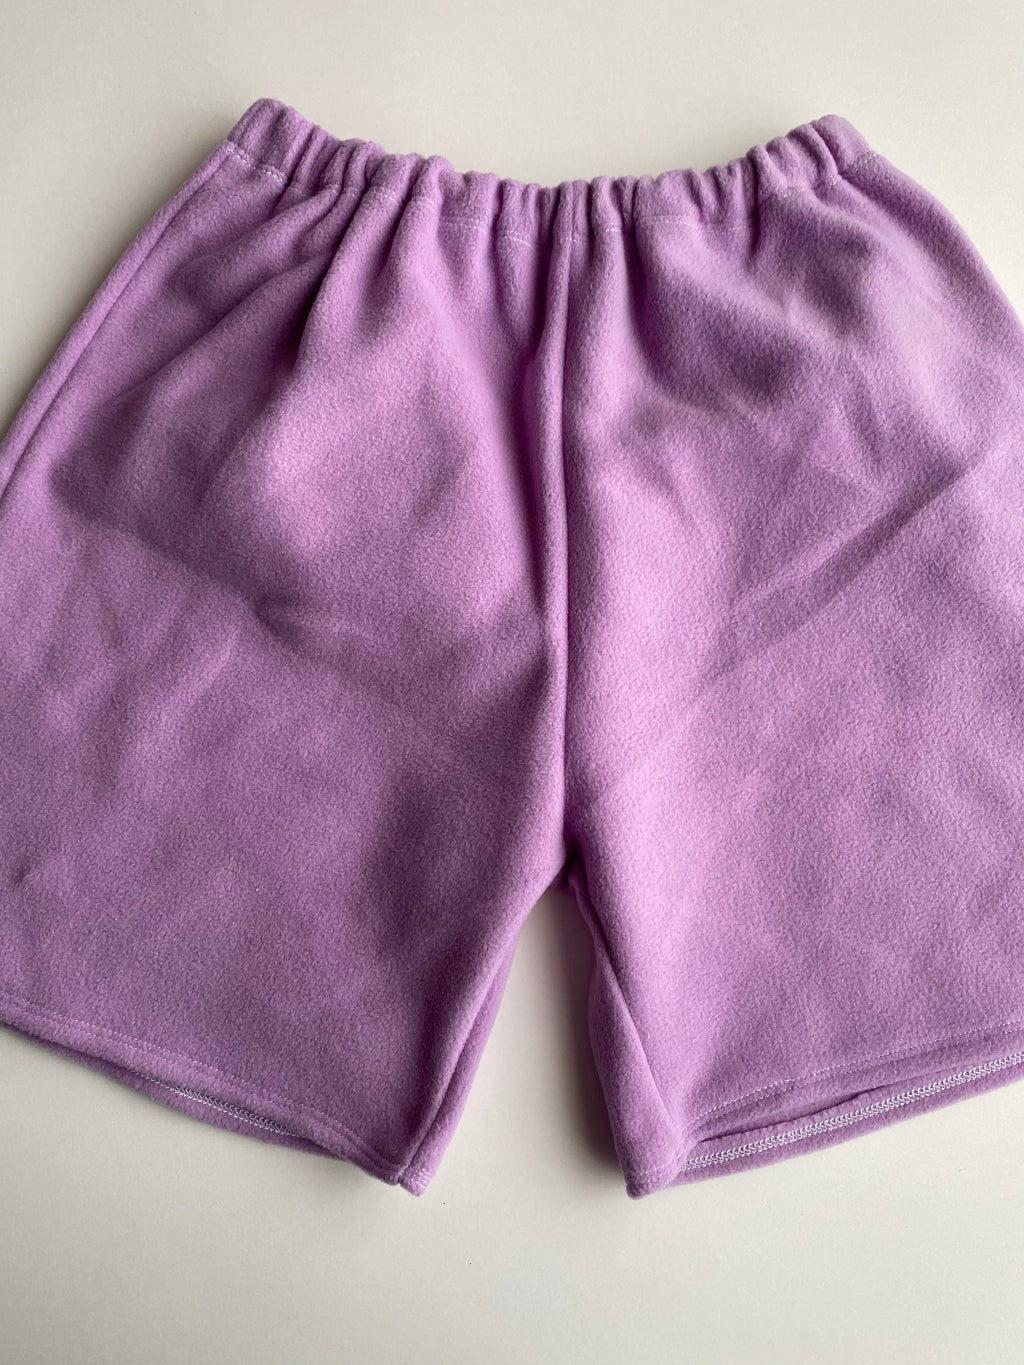 0561 - size 10 - Purple Shorts